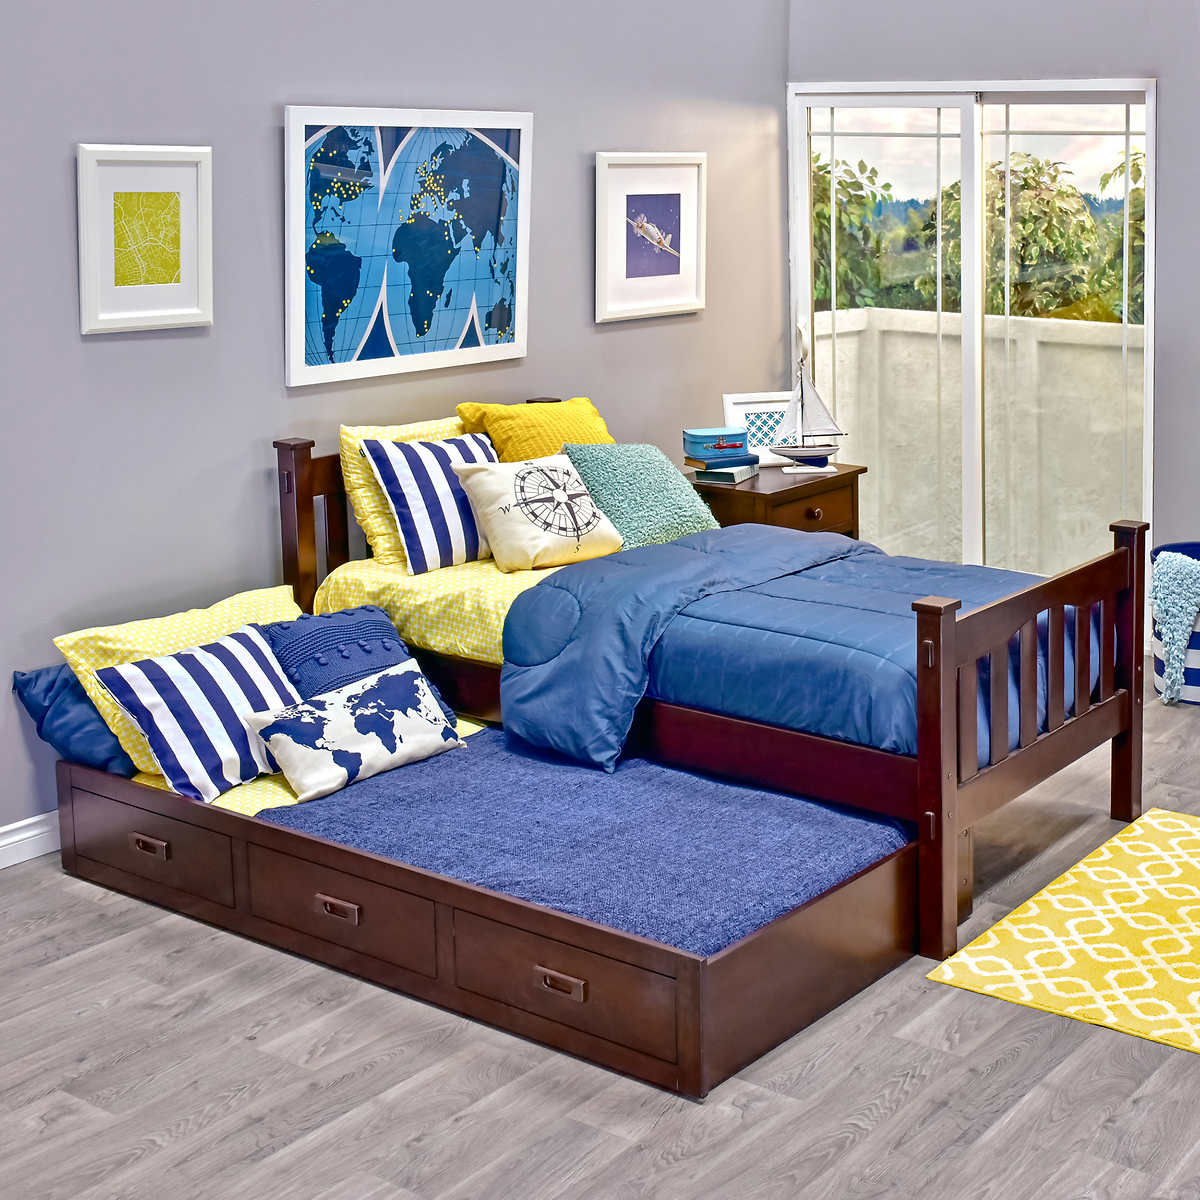 Twin trundle bed frame - Cameron Twin Trundle Bed Item 632030 Click To Zoom